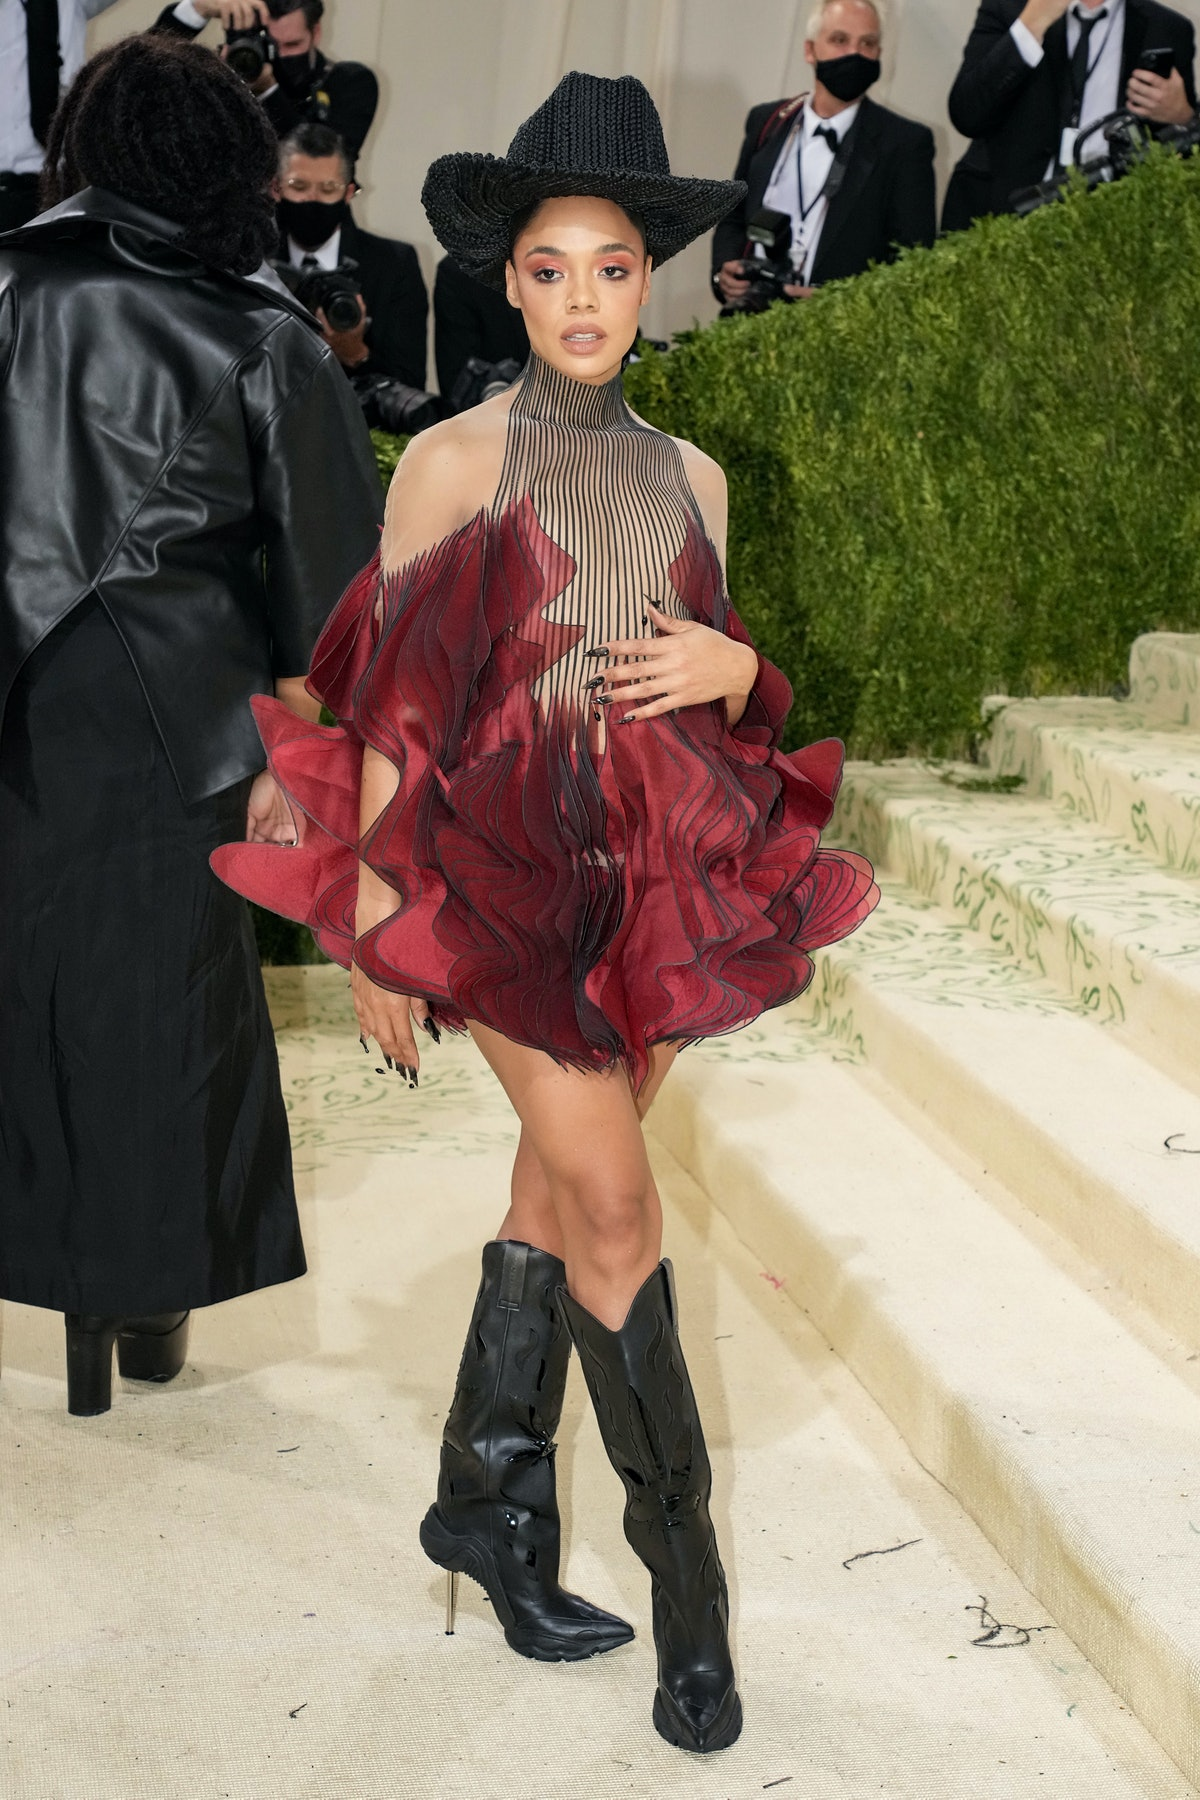 Tessa Thompson attends The 2021 Met Gala Celebrating In America: A Lexicon Of Fashion at Metropolita...